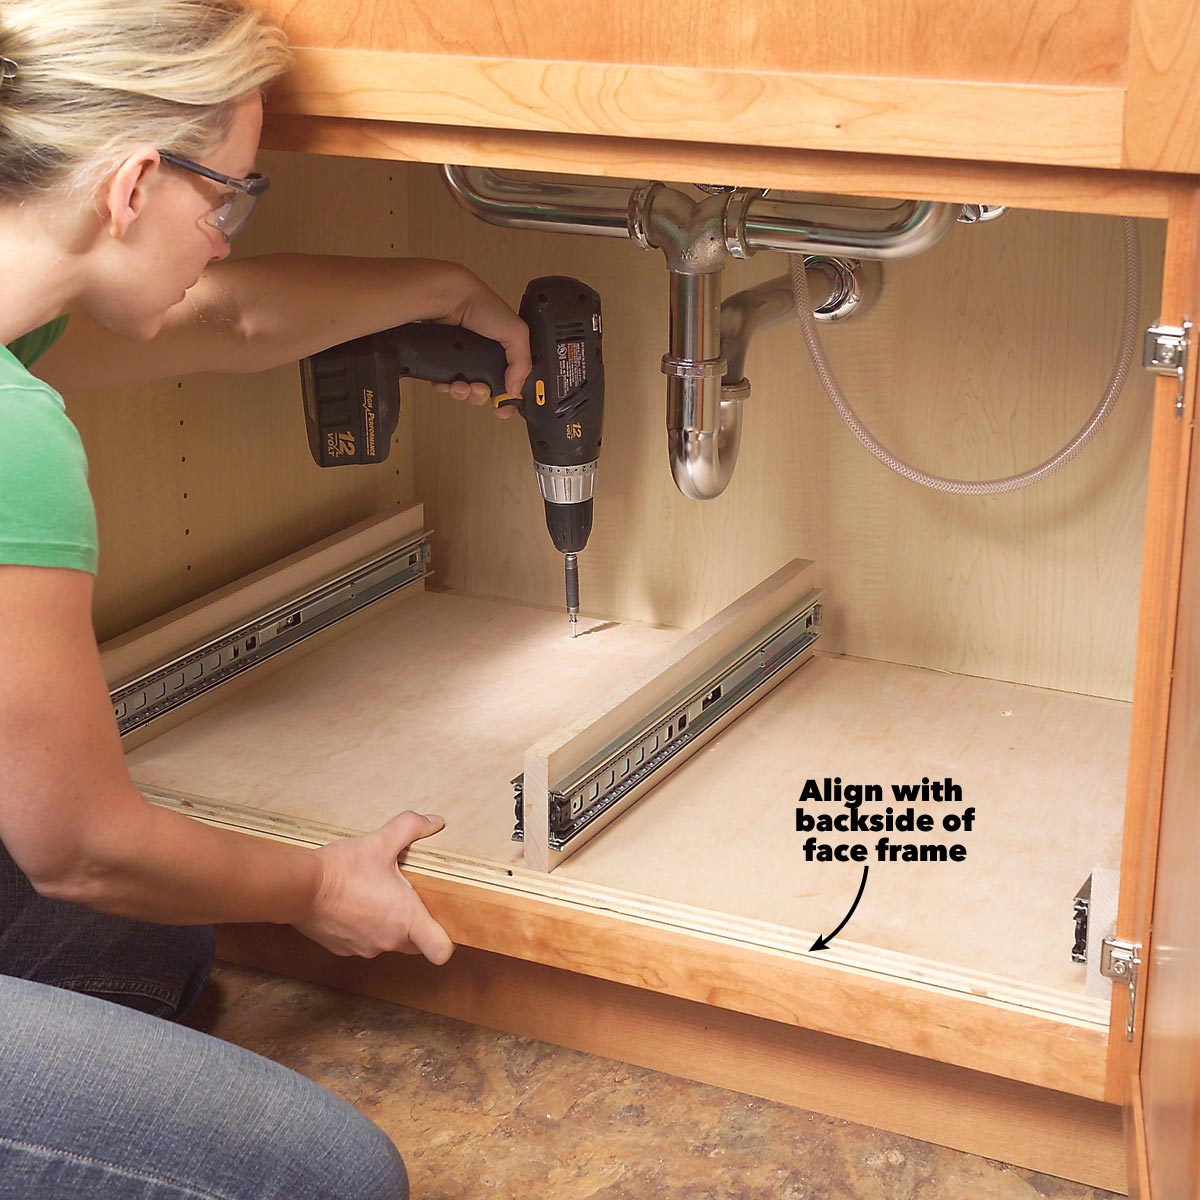 A Better Kitchen Life! Build Pull Out Under Sink Storage Trays for Your Kitchen.| VADANIA